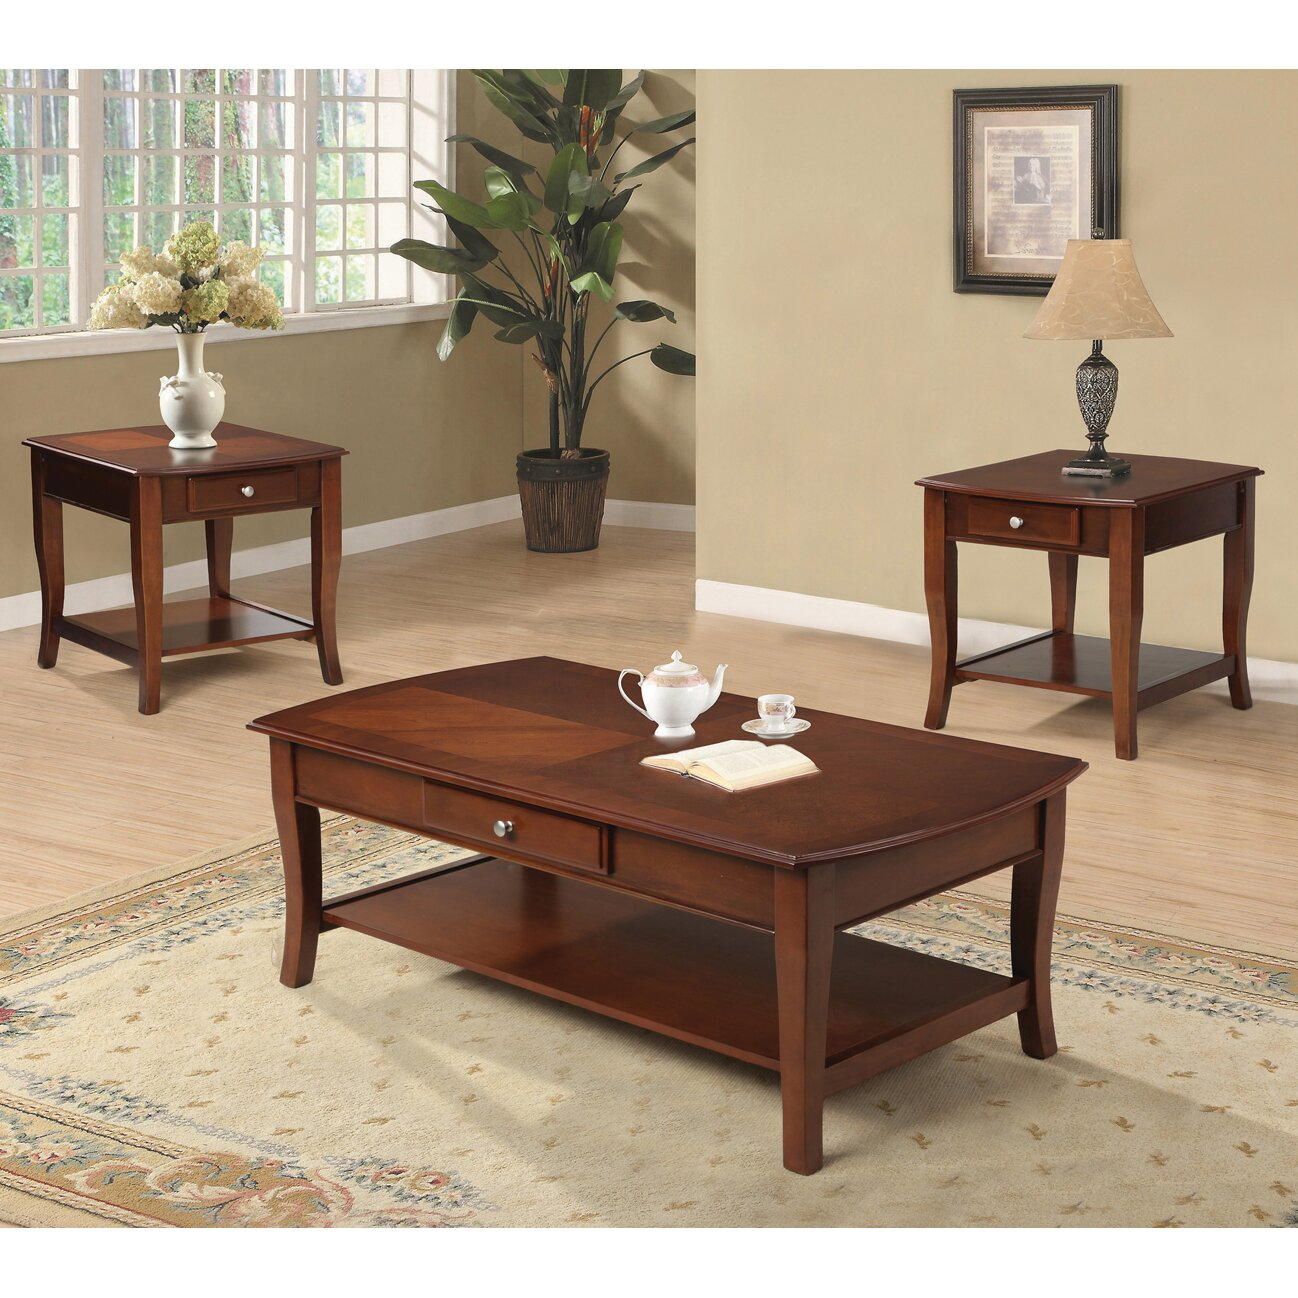 Veropeso 3 Piece Coffee Table Set: 3 Piece Coffee Table Set